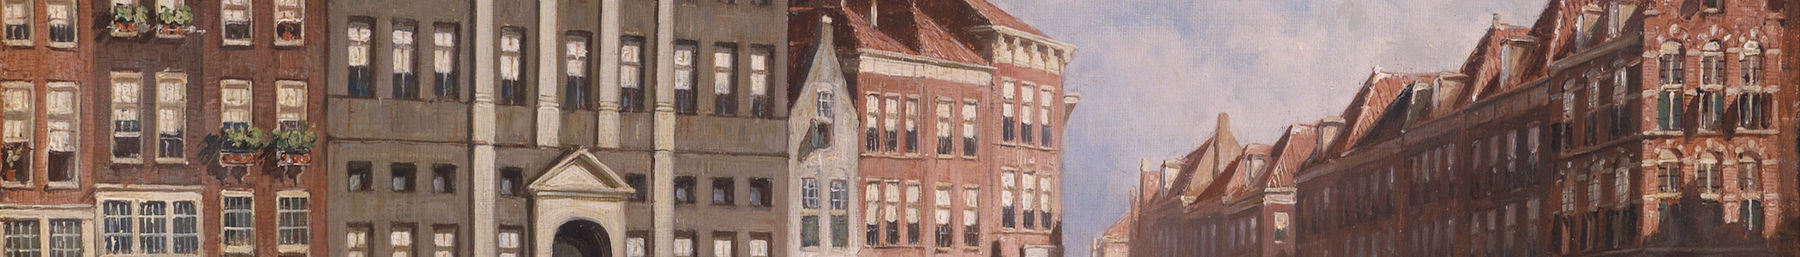 The Markt of 's Hertogenbosch, with its town hall, is famous not only for its unusual triangular shape, but also for changing very little over the centuries, as exemplified by this historic painting.